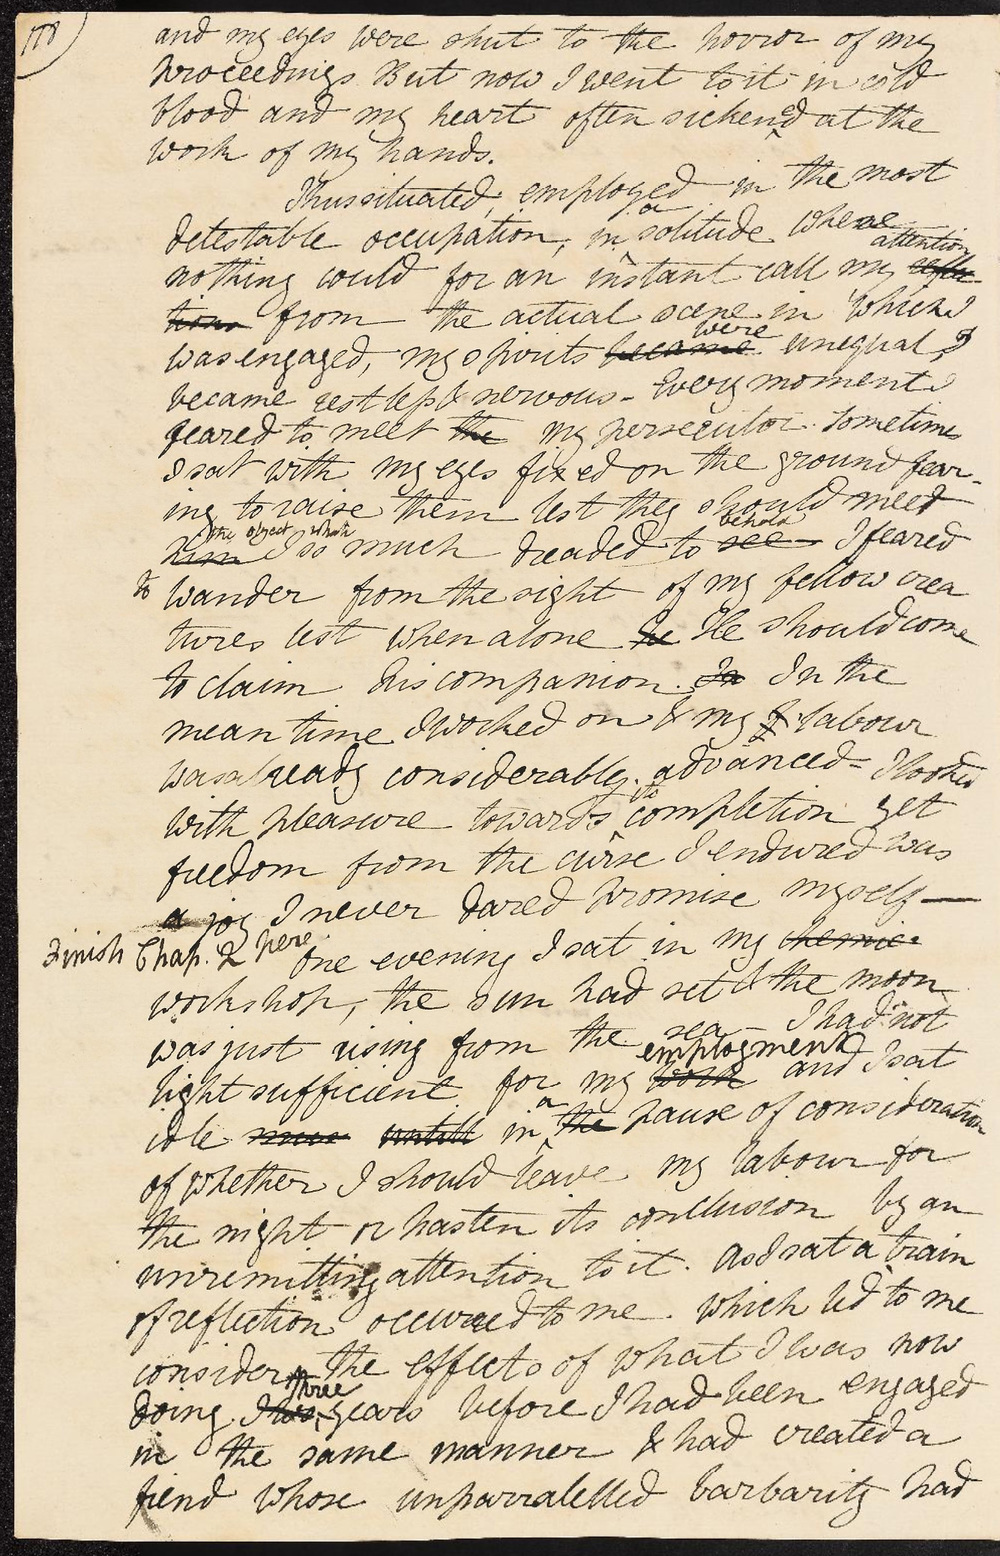 Mary Shelley, Frankenstein: autograph working draft